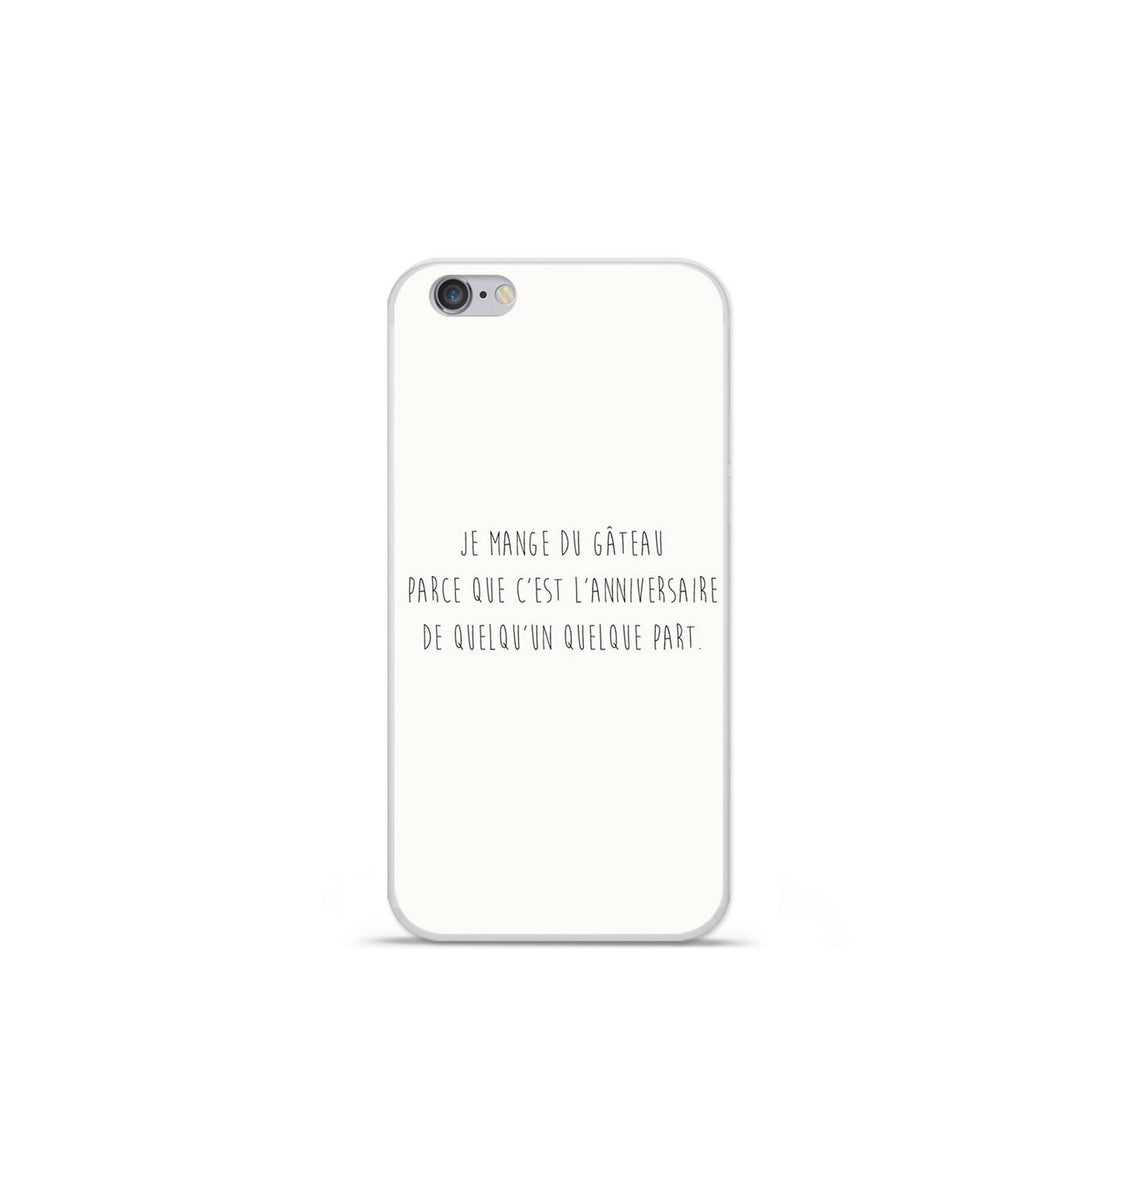 iphone 207 20plus 20coque 20citation 662rrx 1200x1200